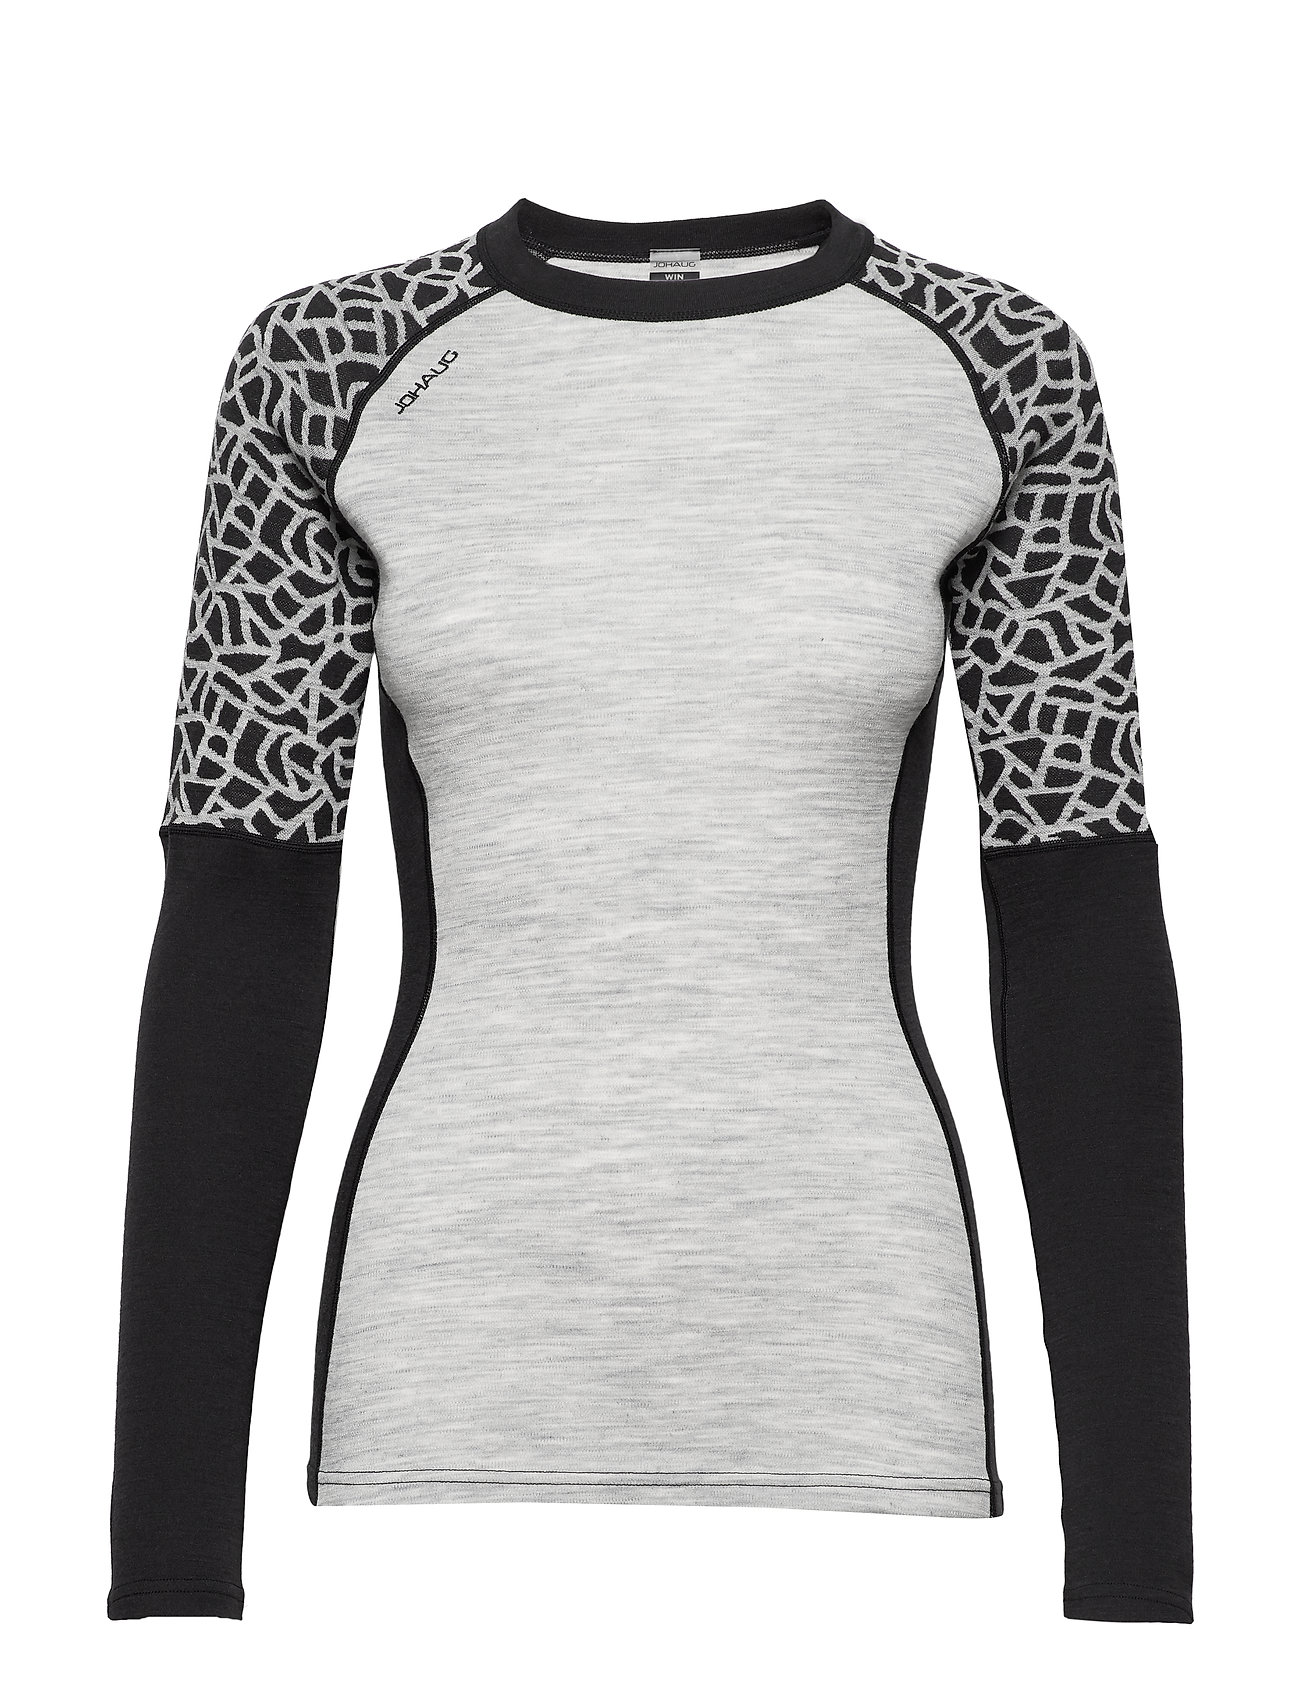 Johaug WIN WOOL LONG SLEEVE - BLACK